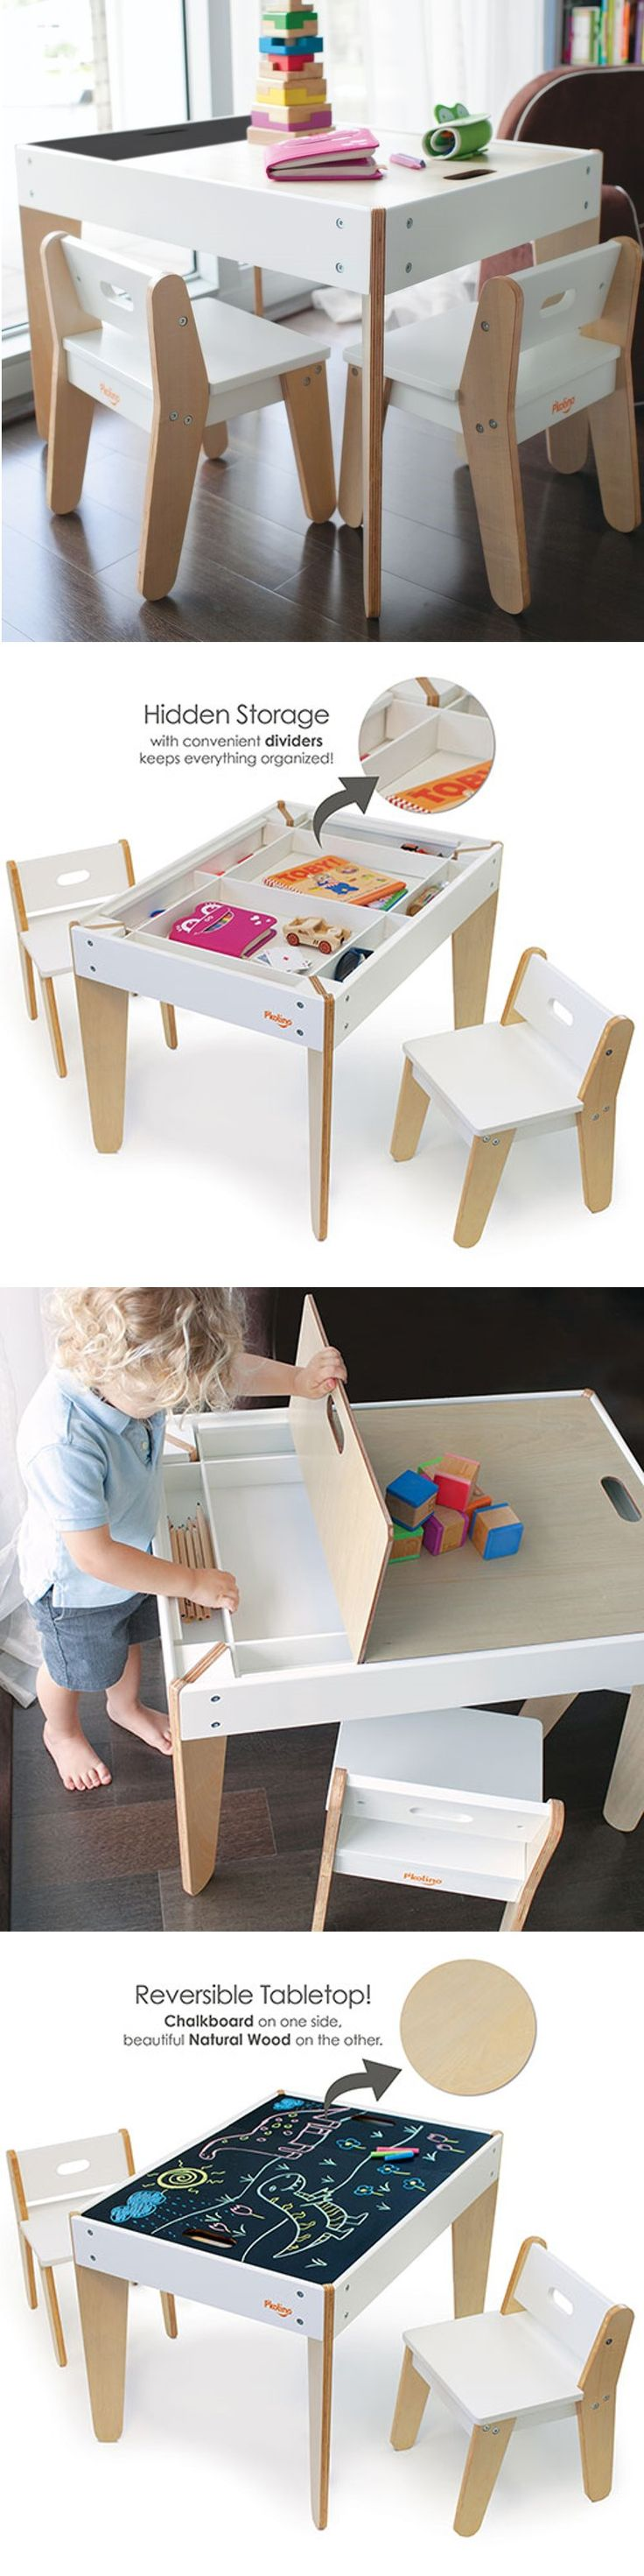 P'kolino Little Modern Children's Table with reversible top and built in storage compartment.  This toddler table has reversible chalk table top (to quickly hide any mess) and two ergonomic child chairs. Playfully stylish design fits bedroom, playroom or